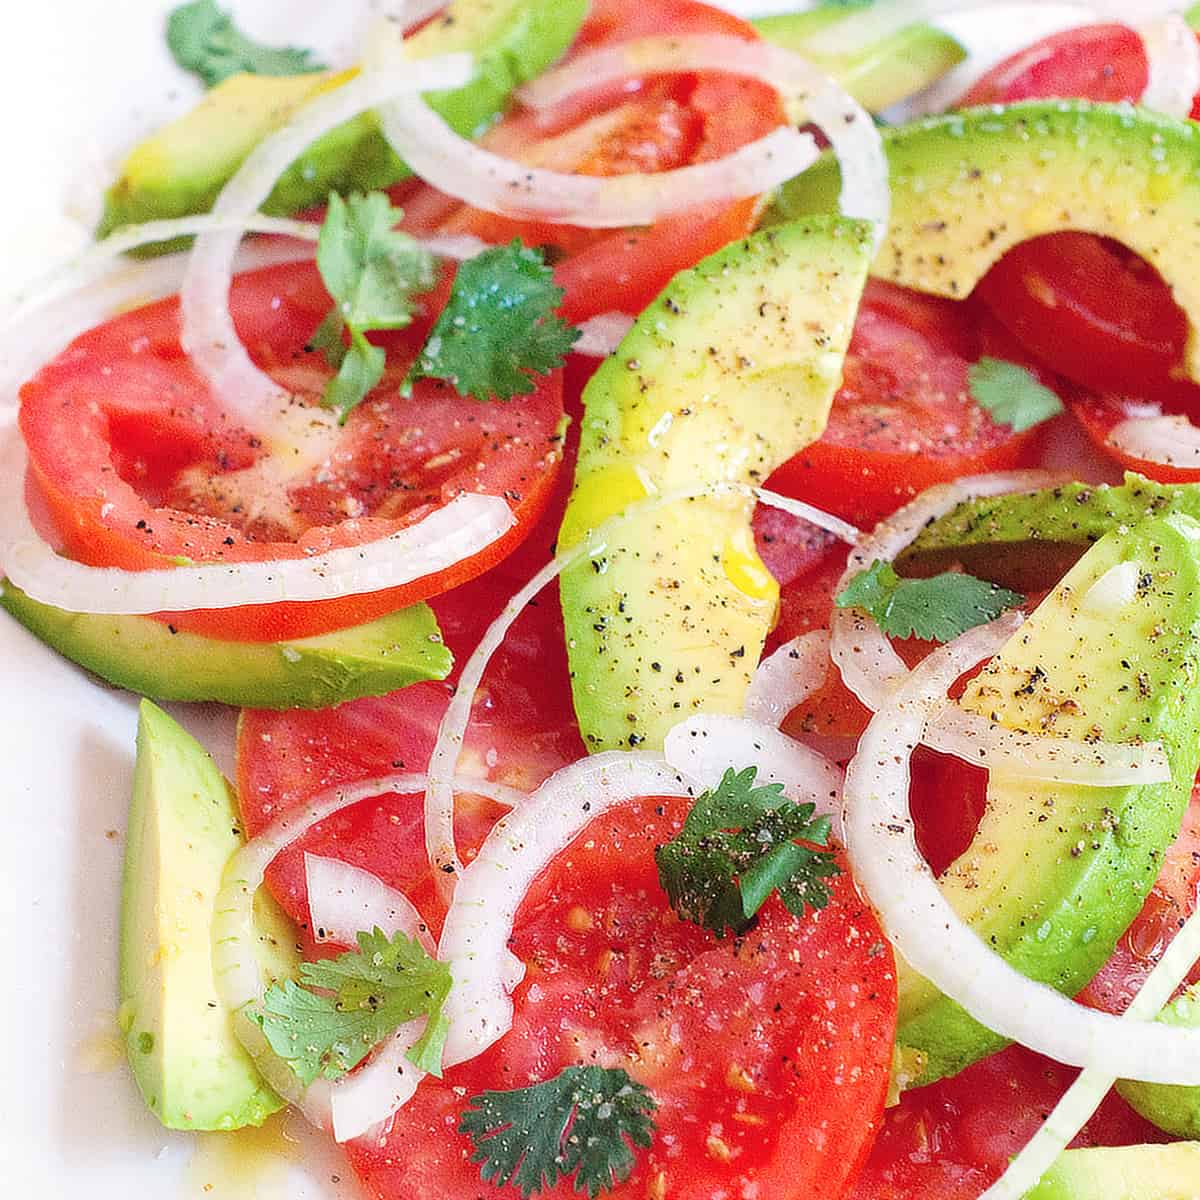 Tomato and avocado salad on a large white serving plate.